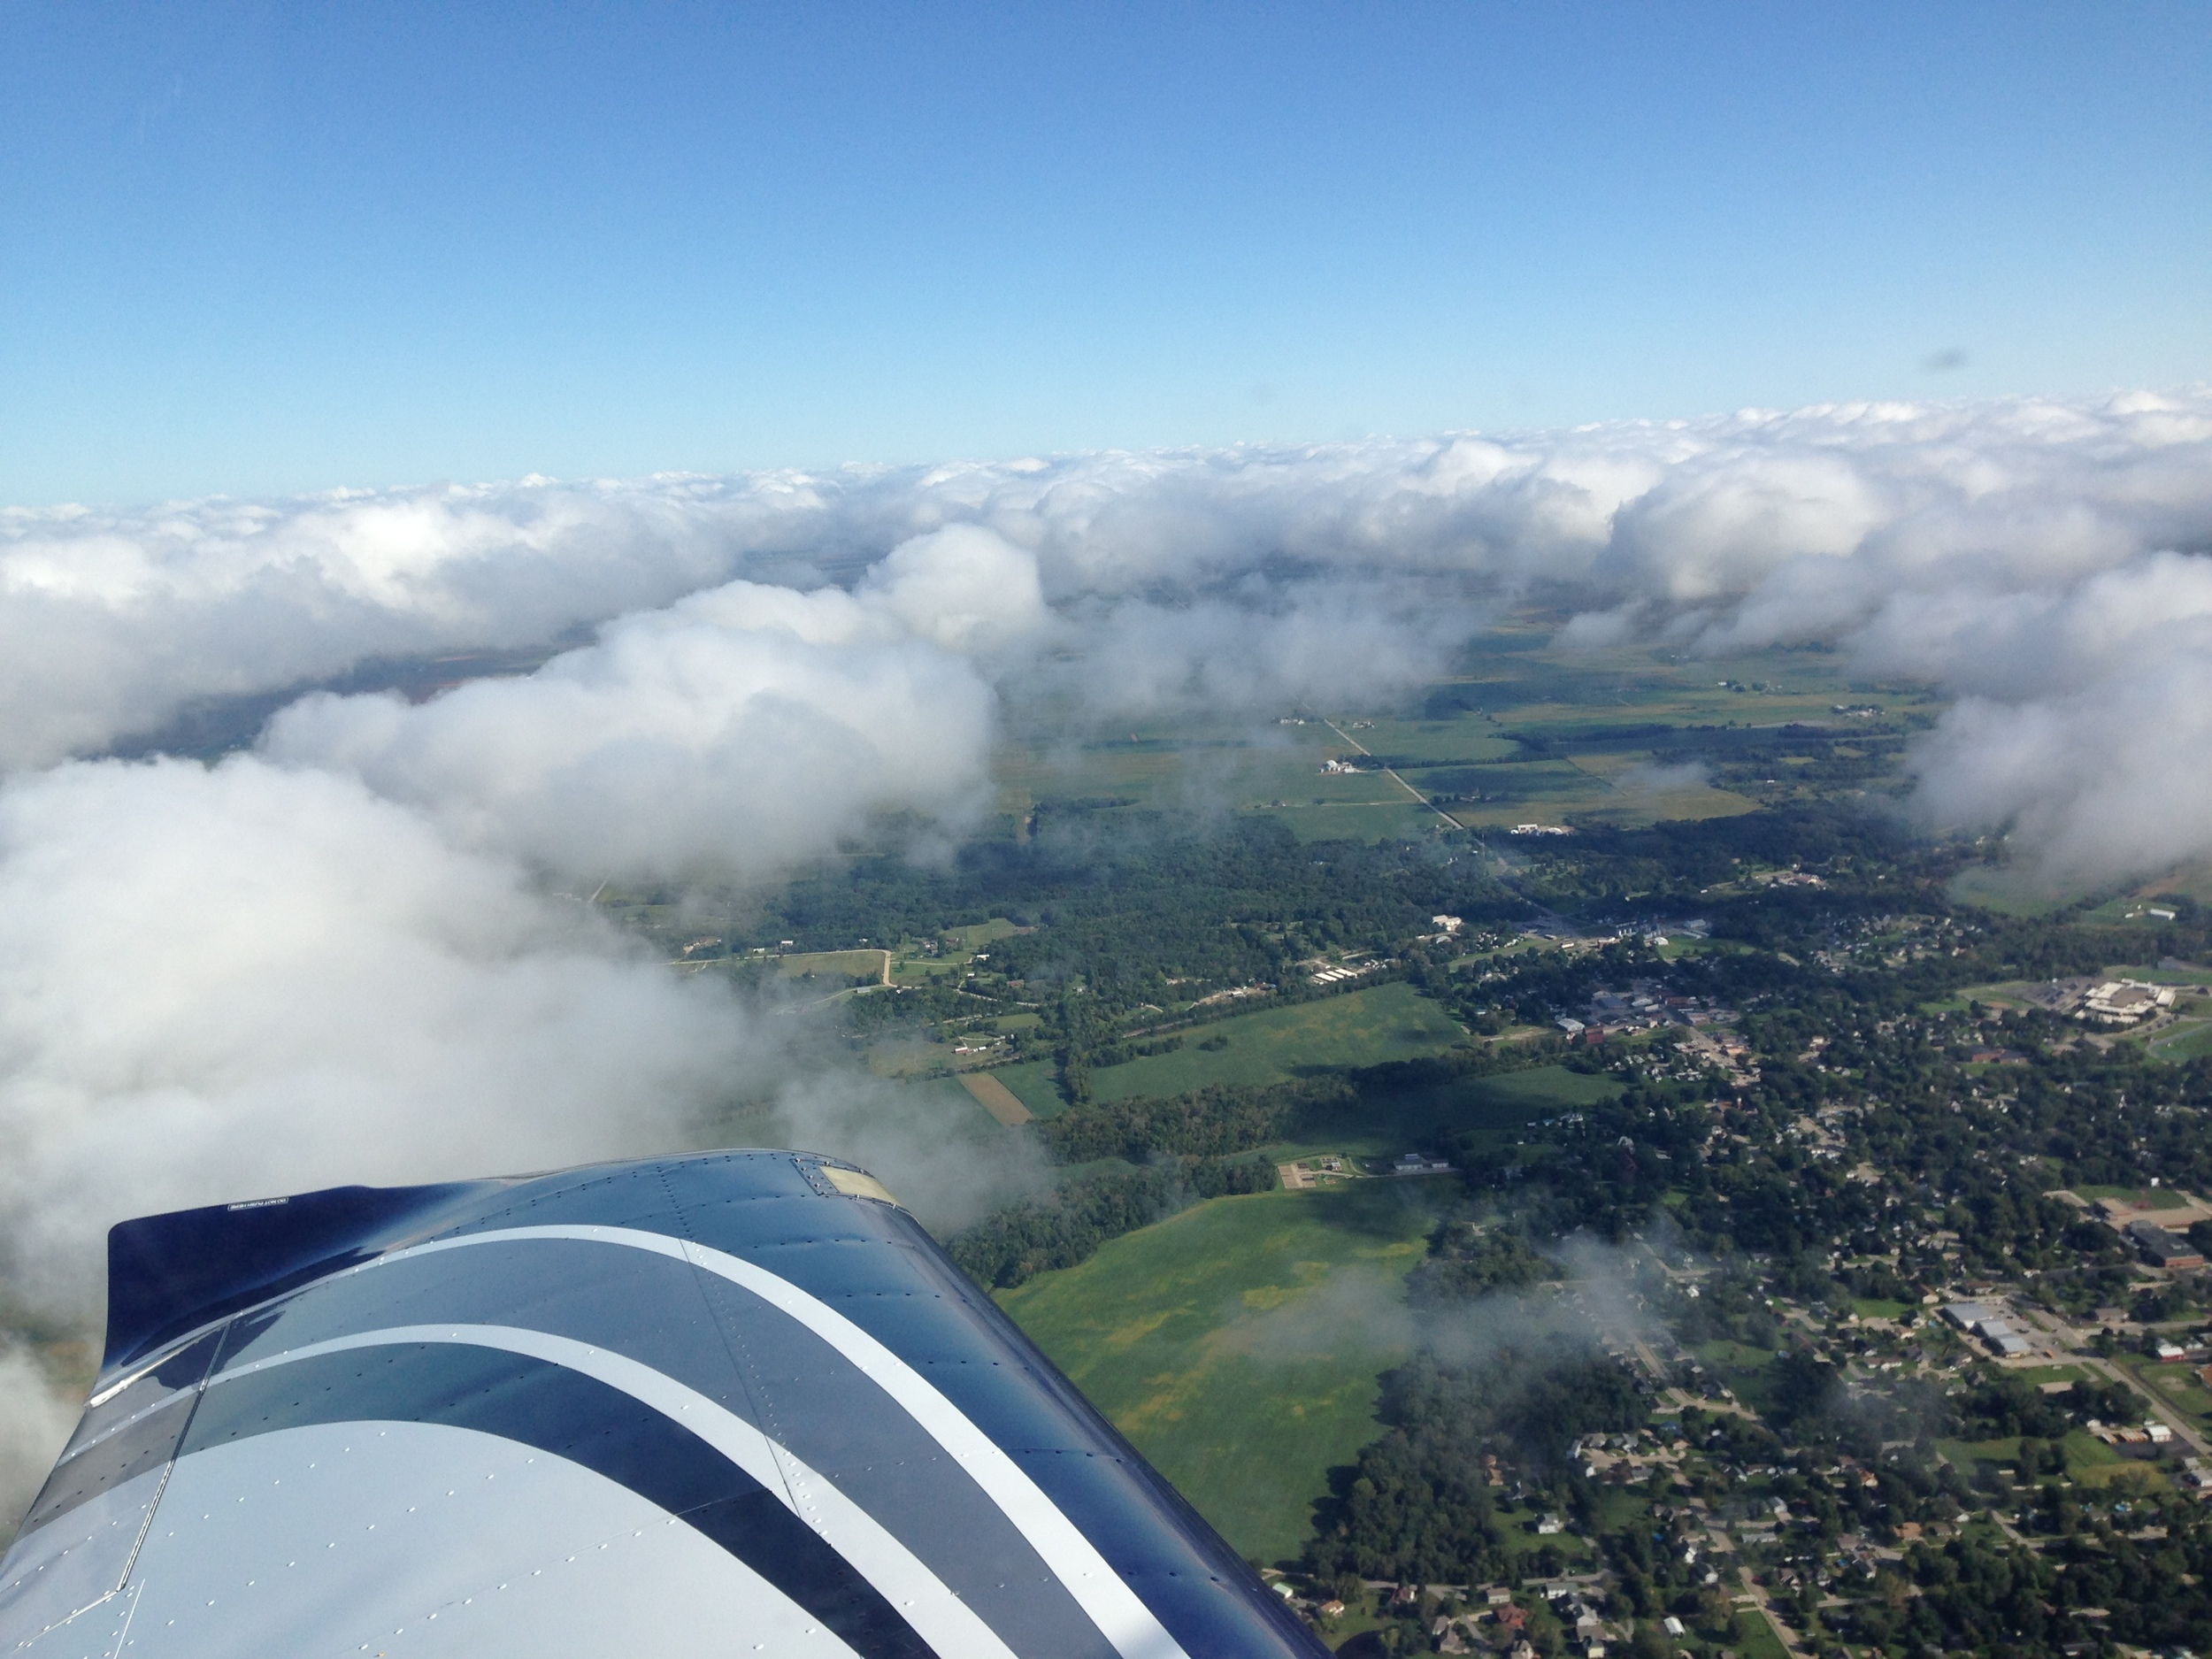 Soaring above the clouds